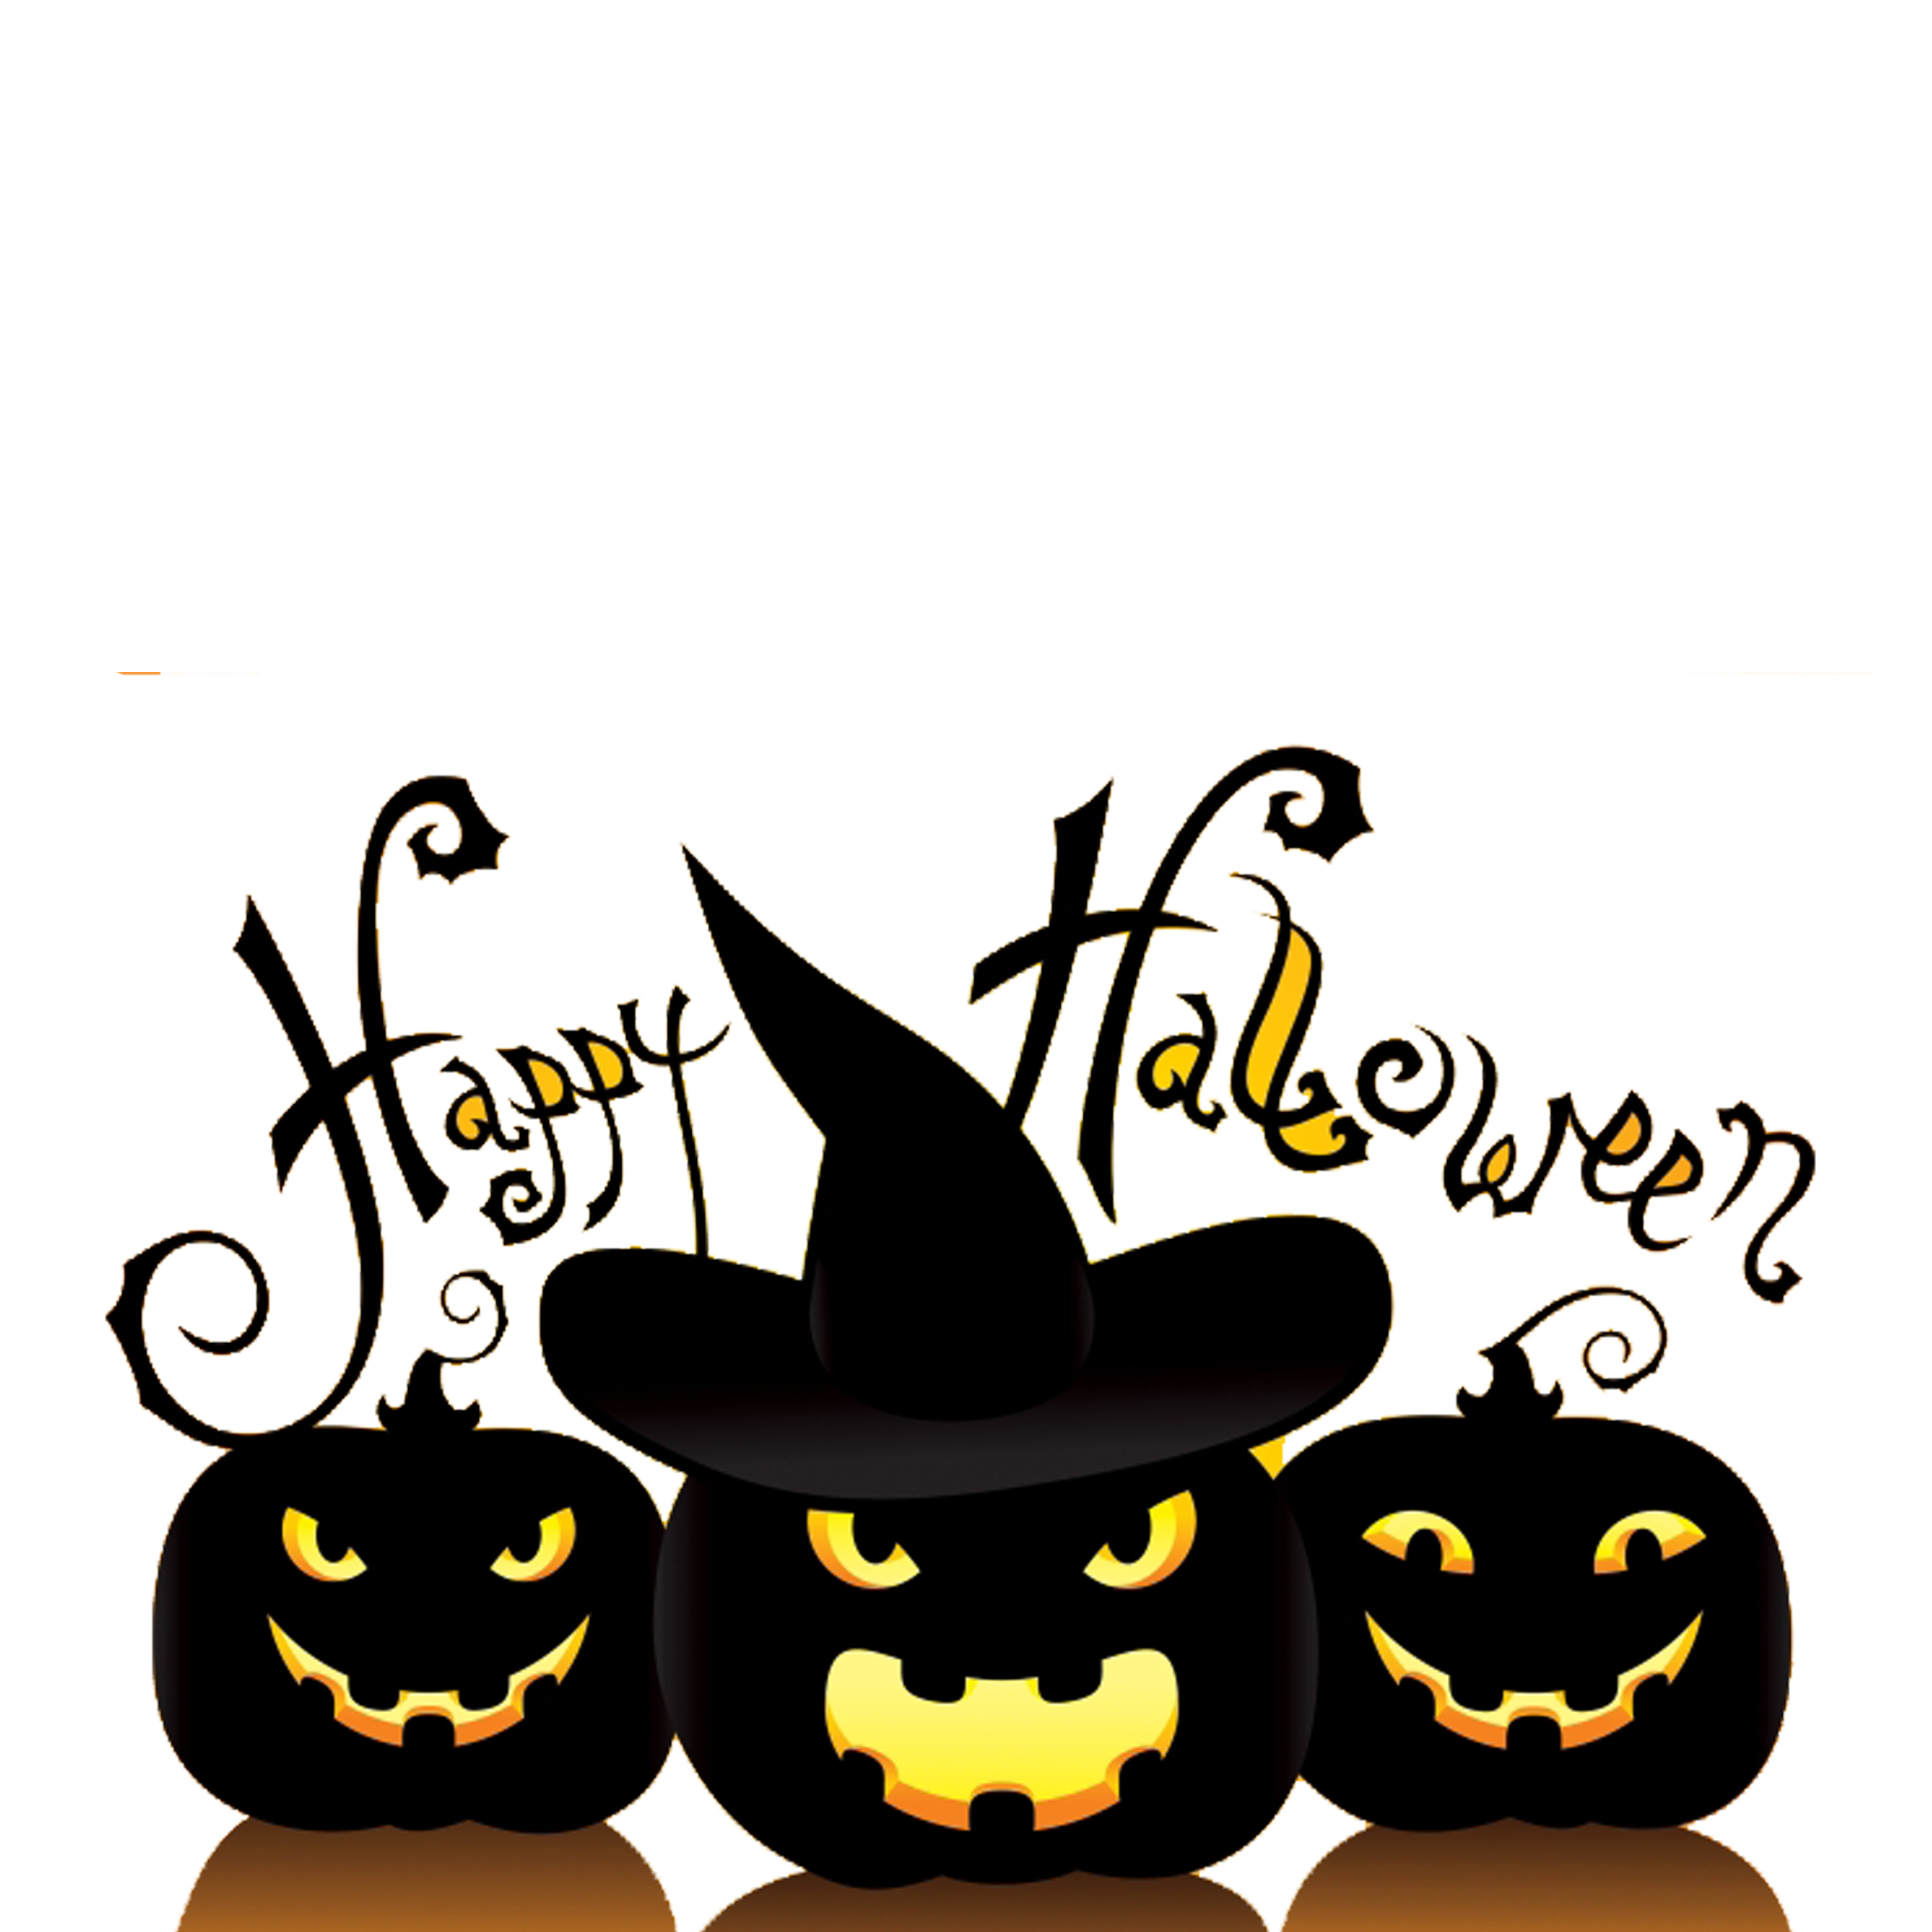 Free halloween costumes clipart clipart download Halloween costume Saying Mask Wallpaper - pumpkin lantern 2953*2953 ... clipart download